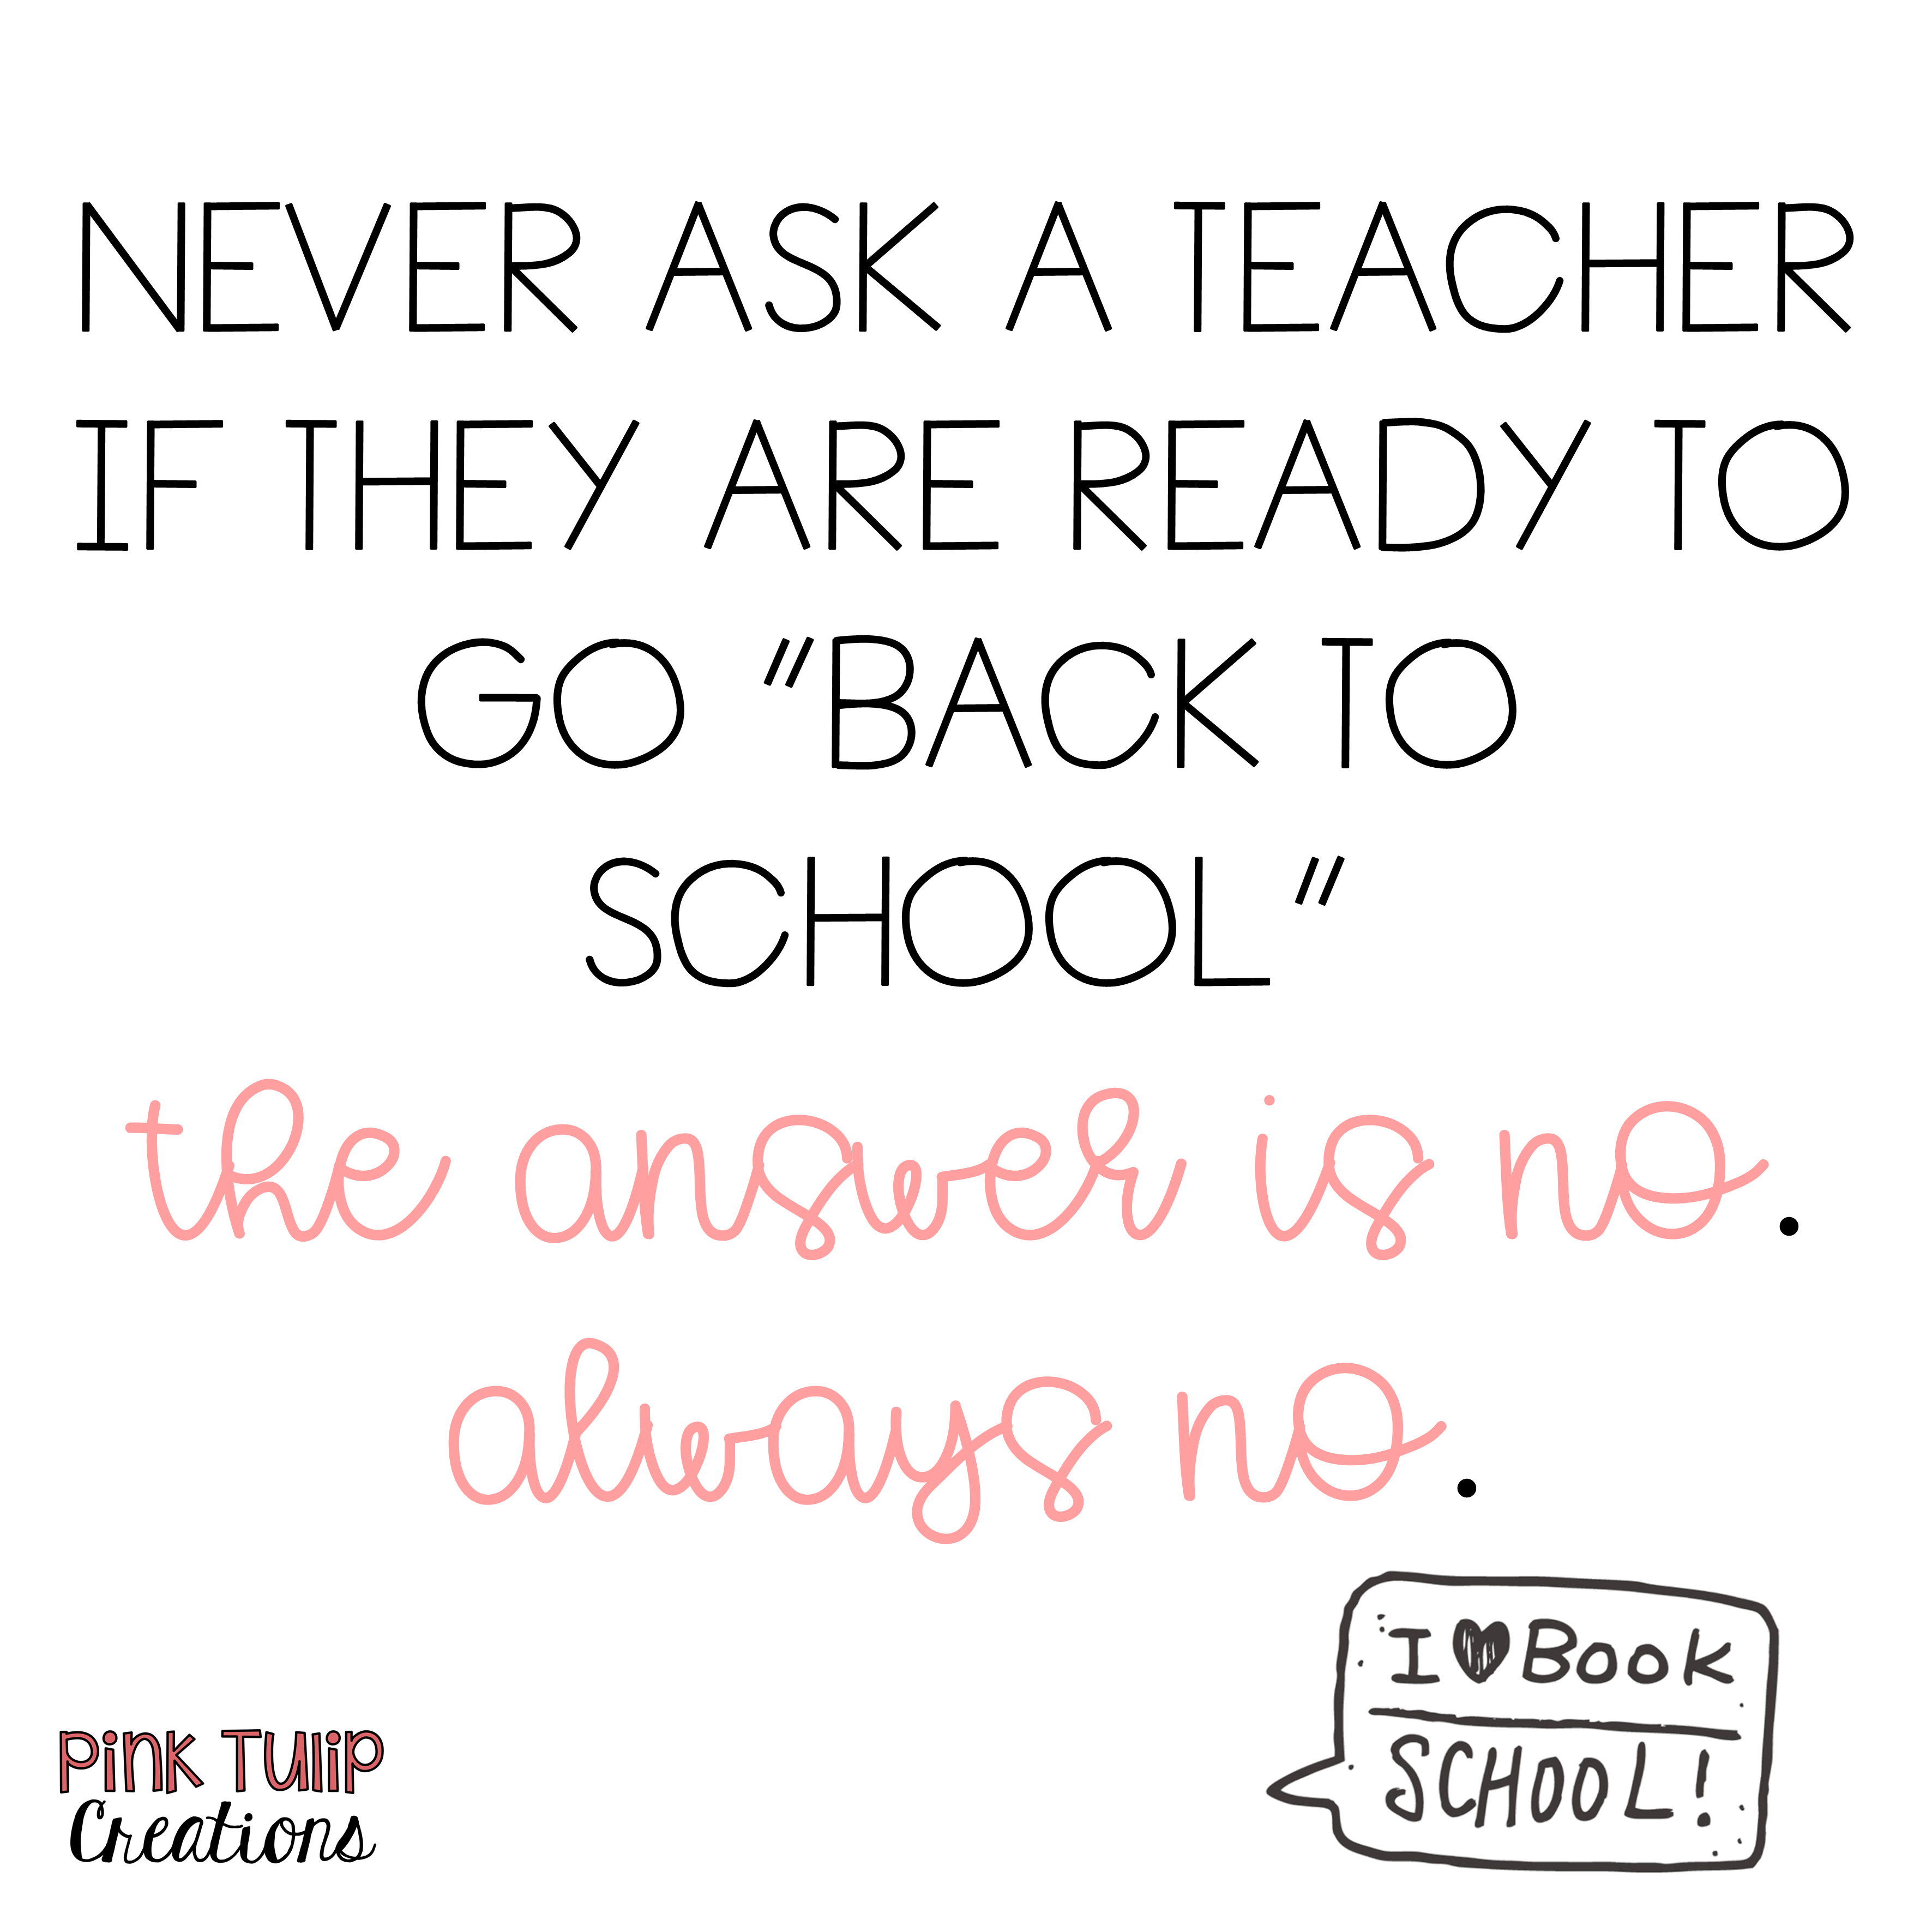 Back to school teacher quotes sayings funny meme